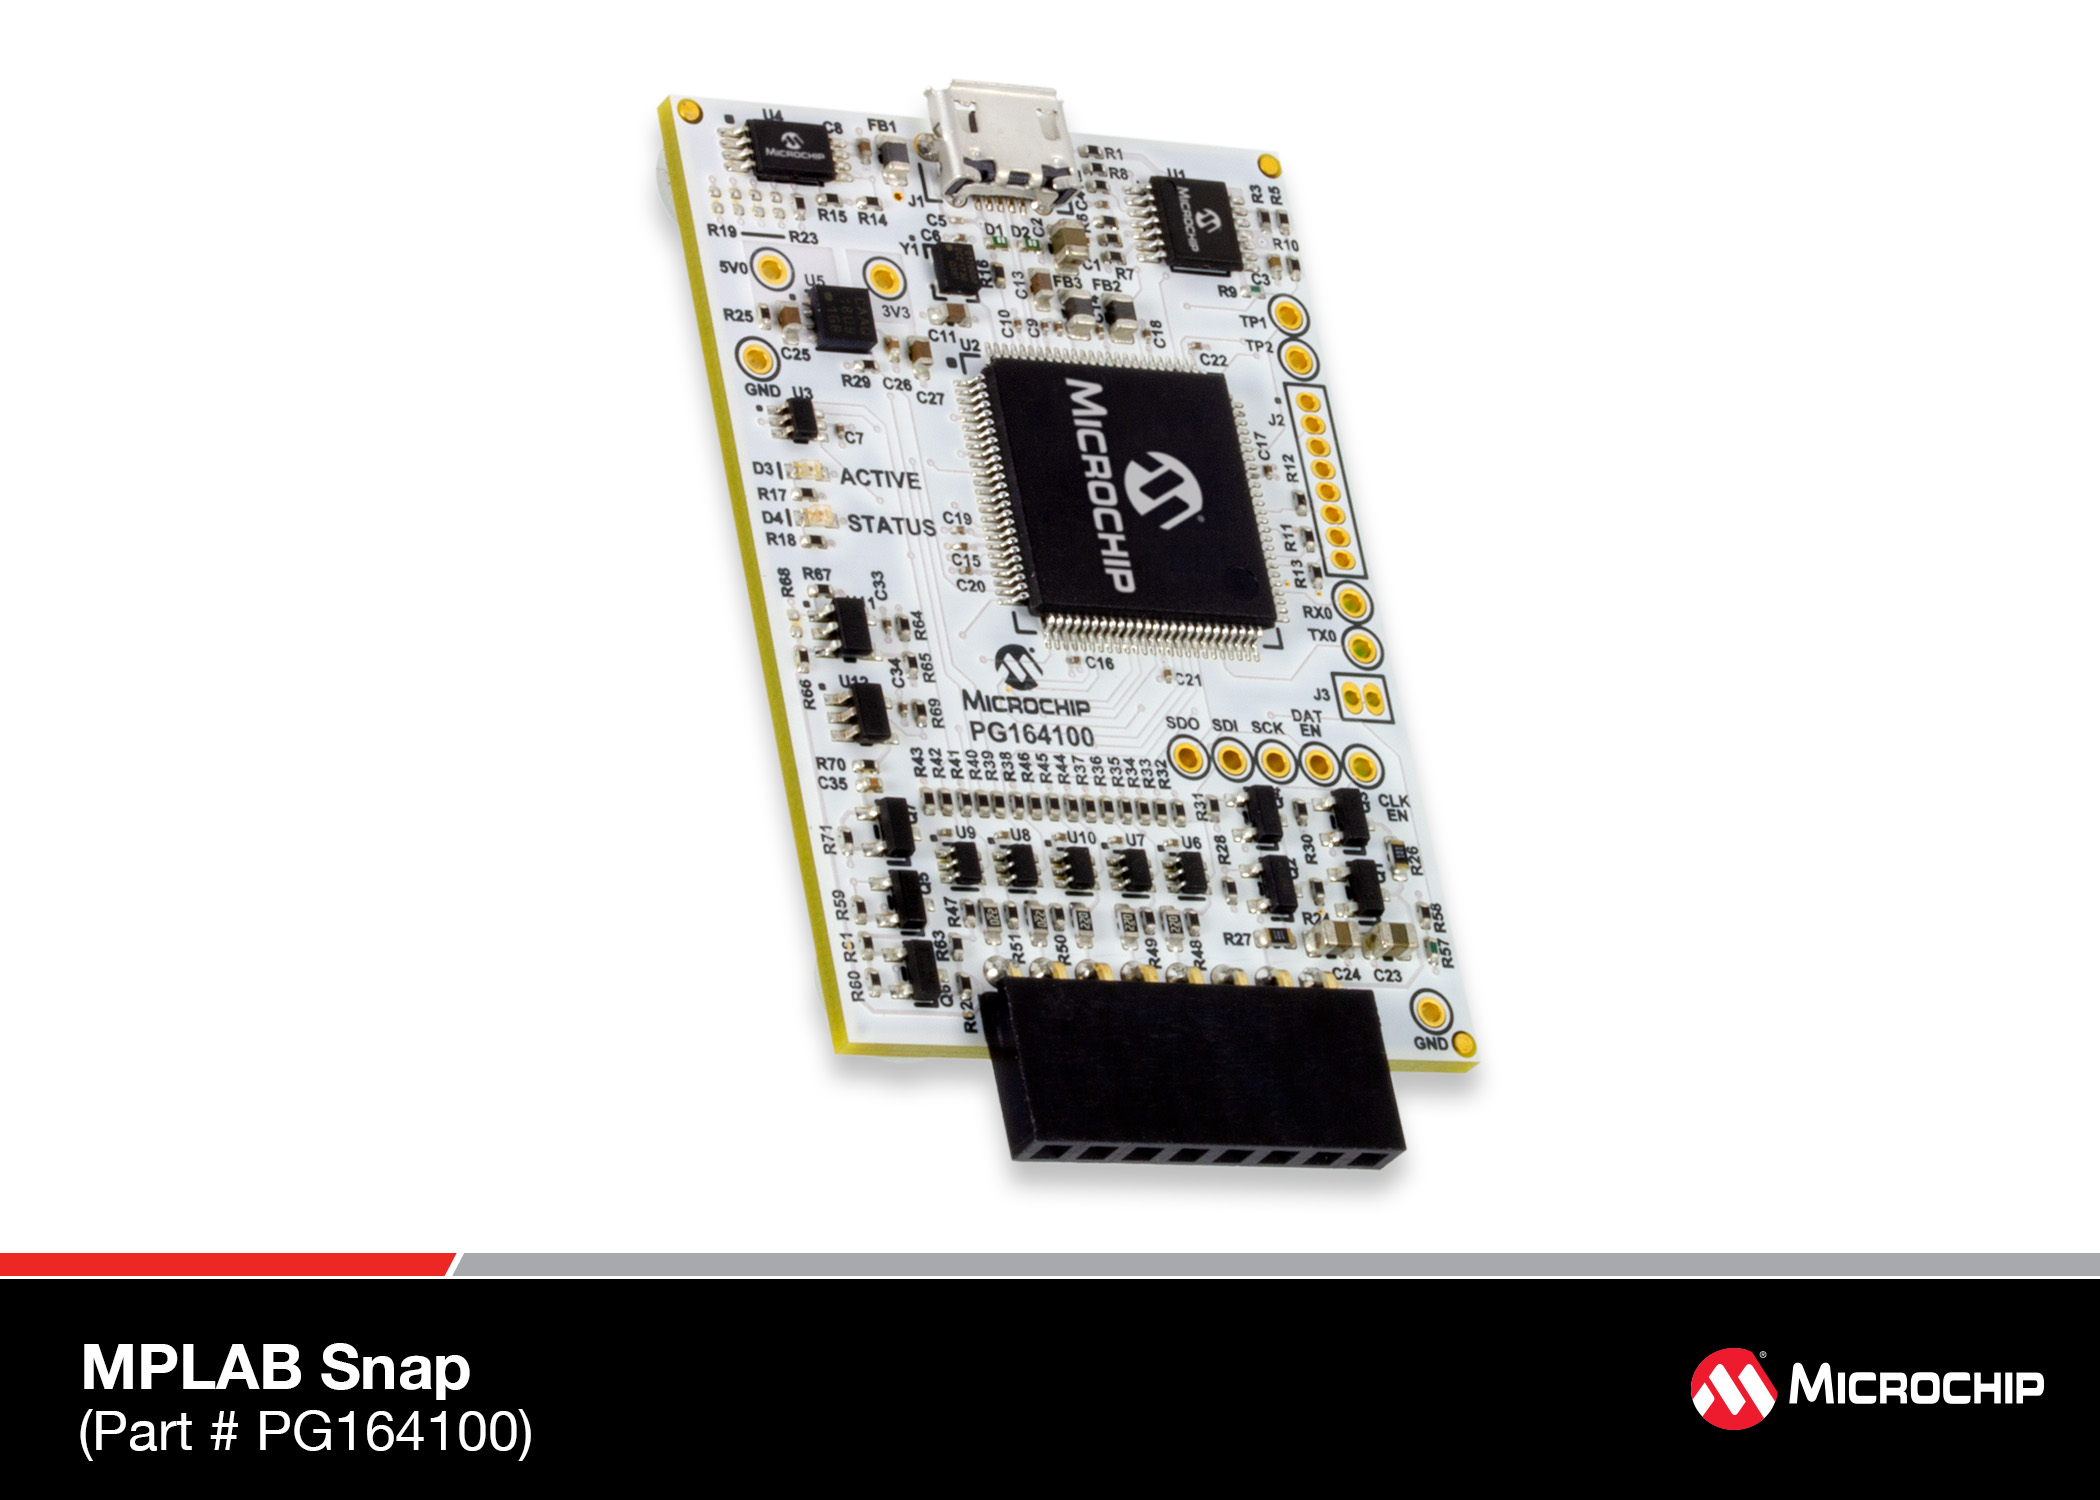 The MPLAB® Snap In-Circuit Debugger/Programmer sells with 50% discount